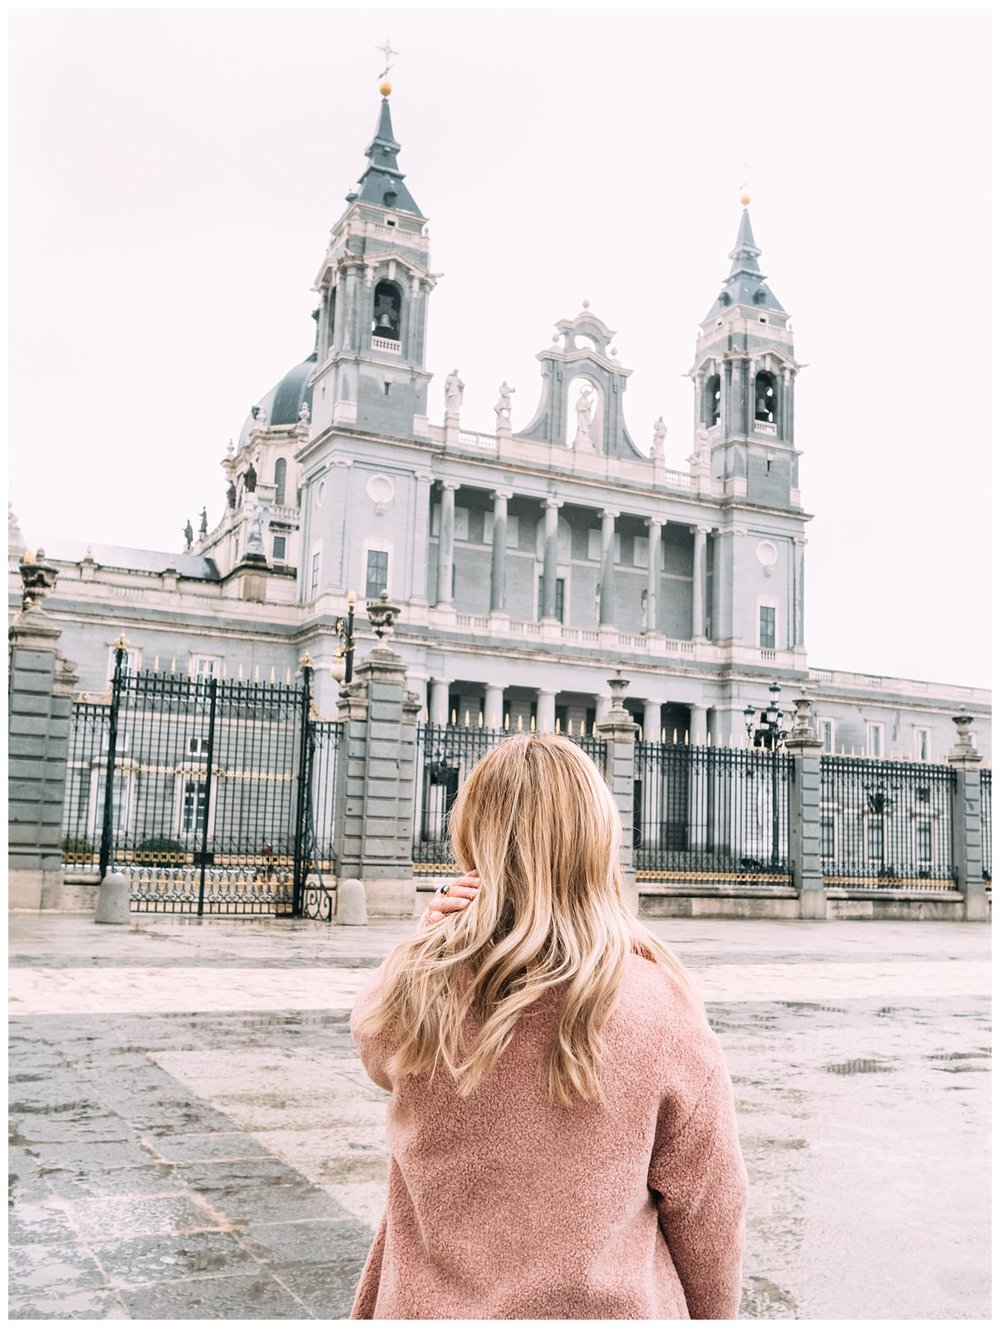 How beautiful is this Church?! It's Almudena Cathedral, which is right next to the Royal Palace as well. So you see two attractions in one.